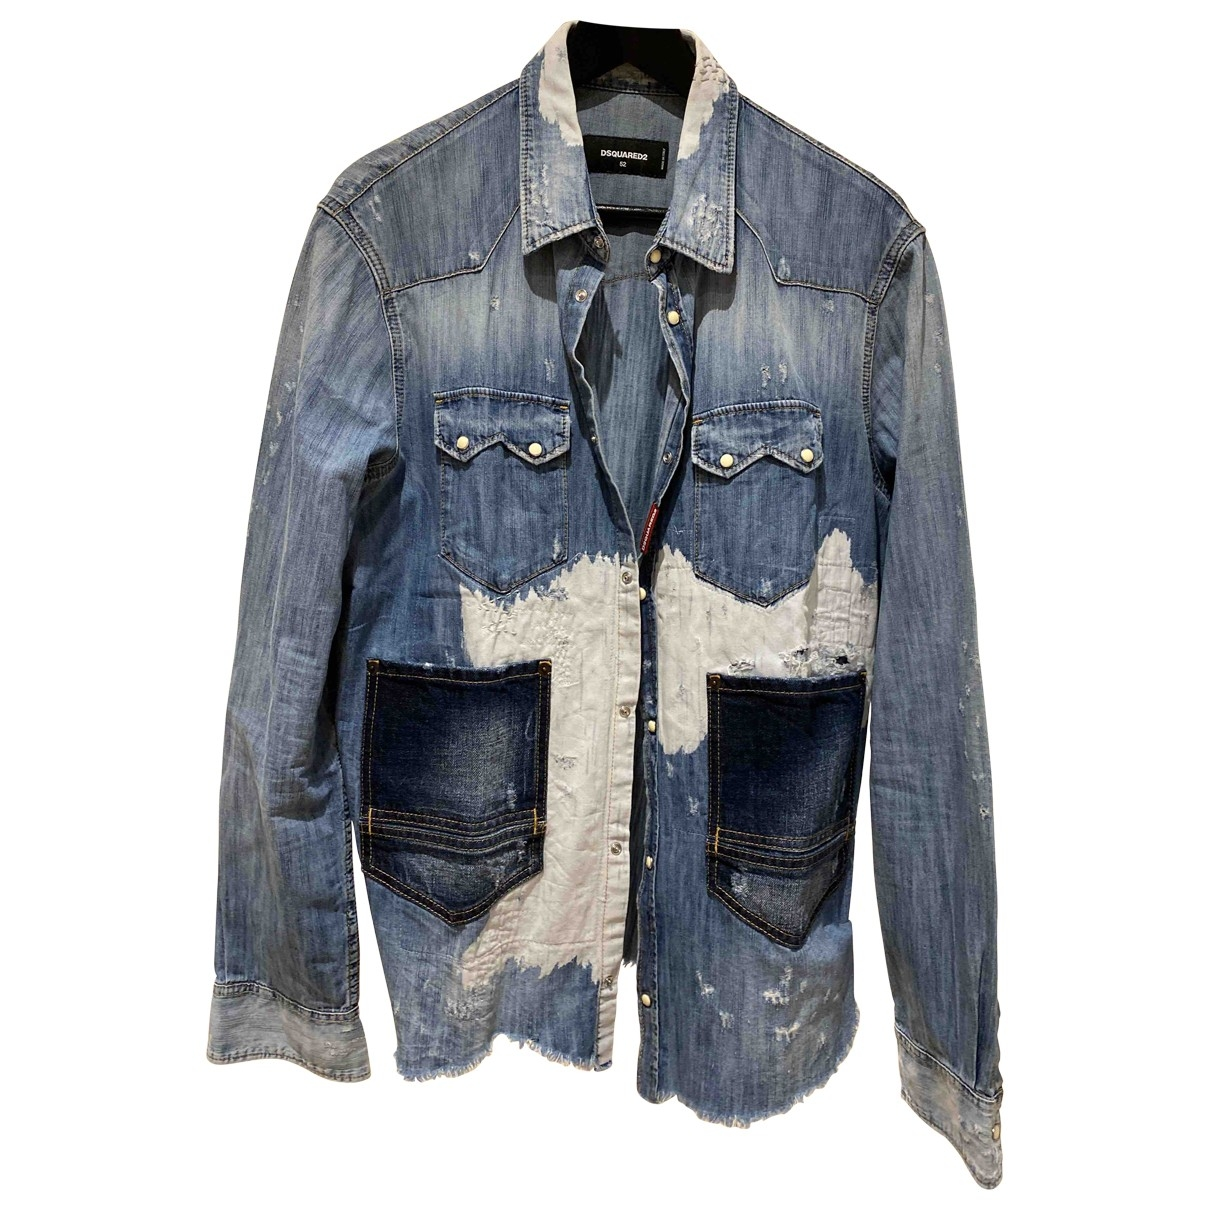 Dsquared2 \N Hemden in  Blau Denim - Jeans